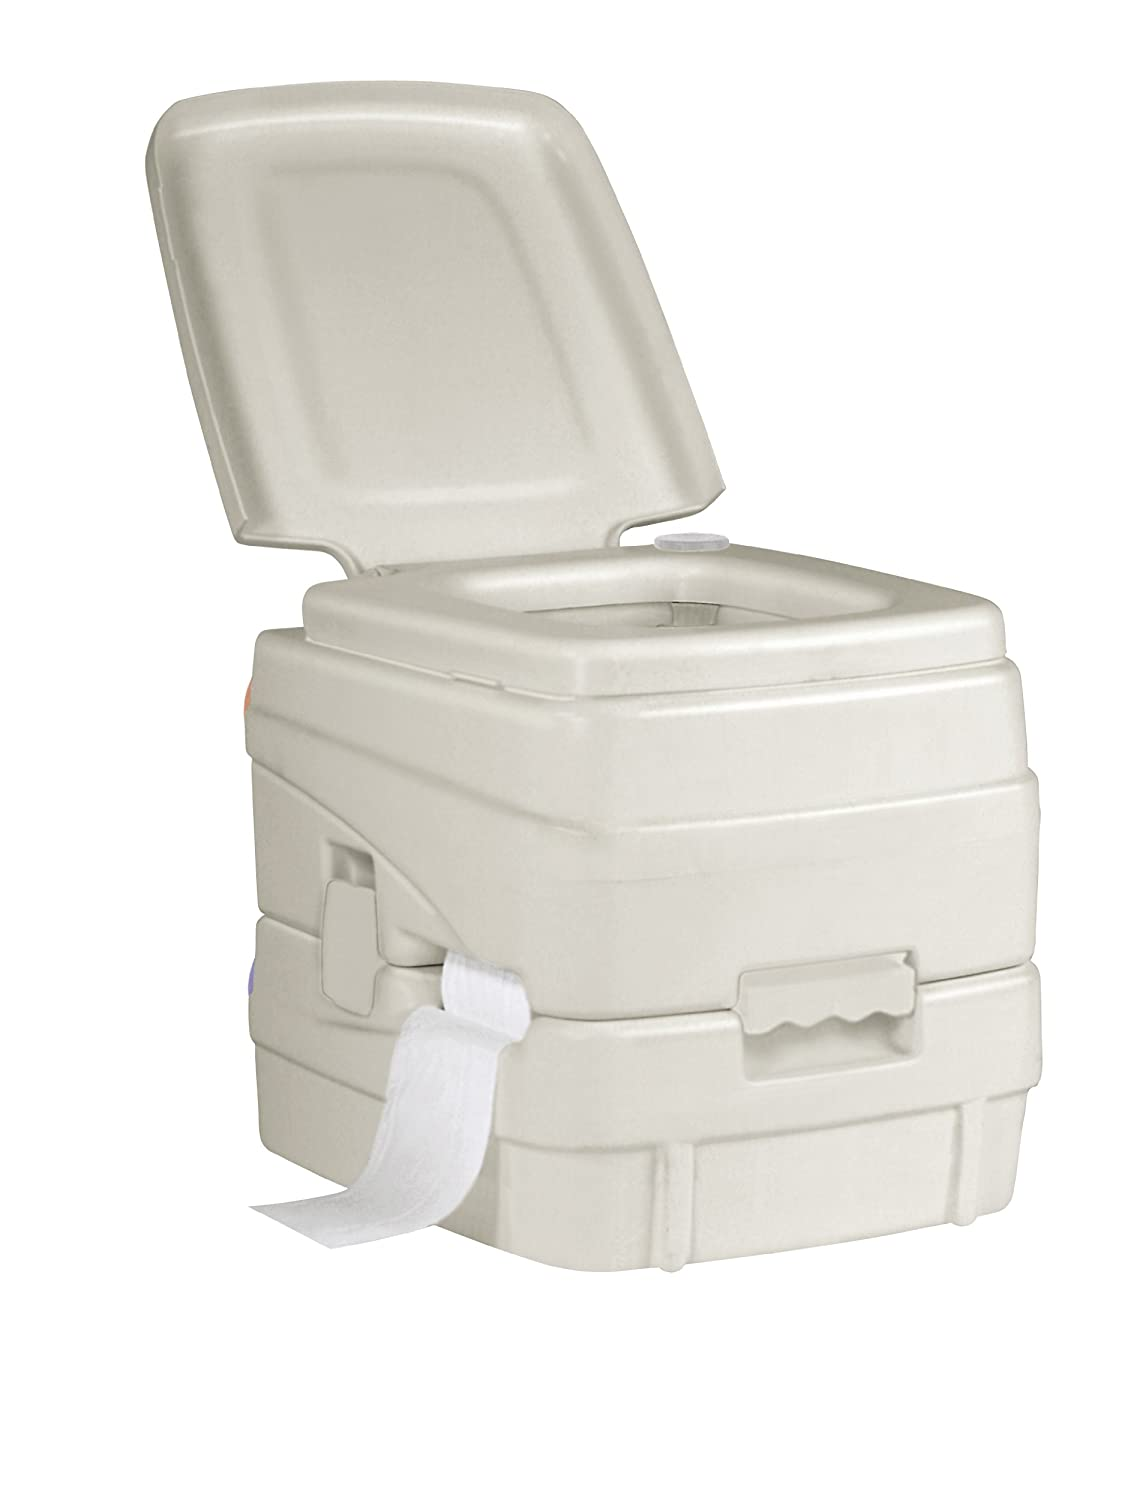 LaPlaya Outdoorproducts Camping Toilette 1520, weiss, 43,6 x 36,5 x 38 cm